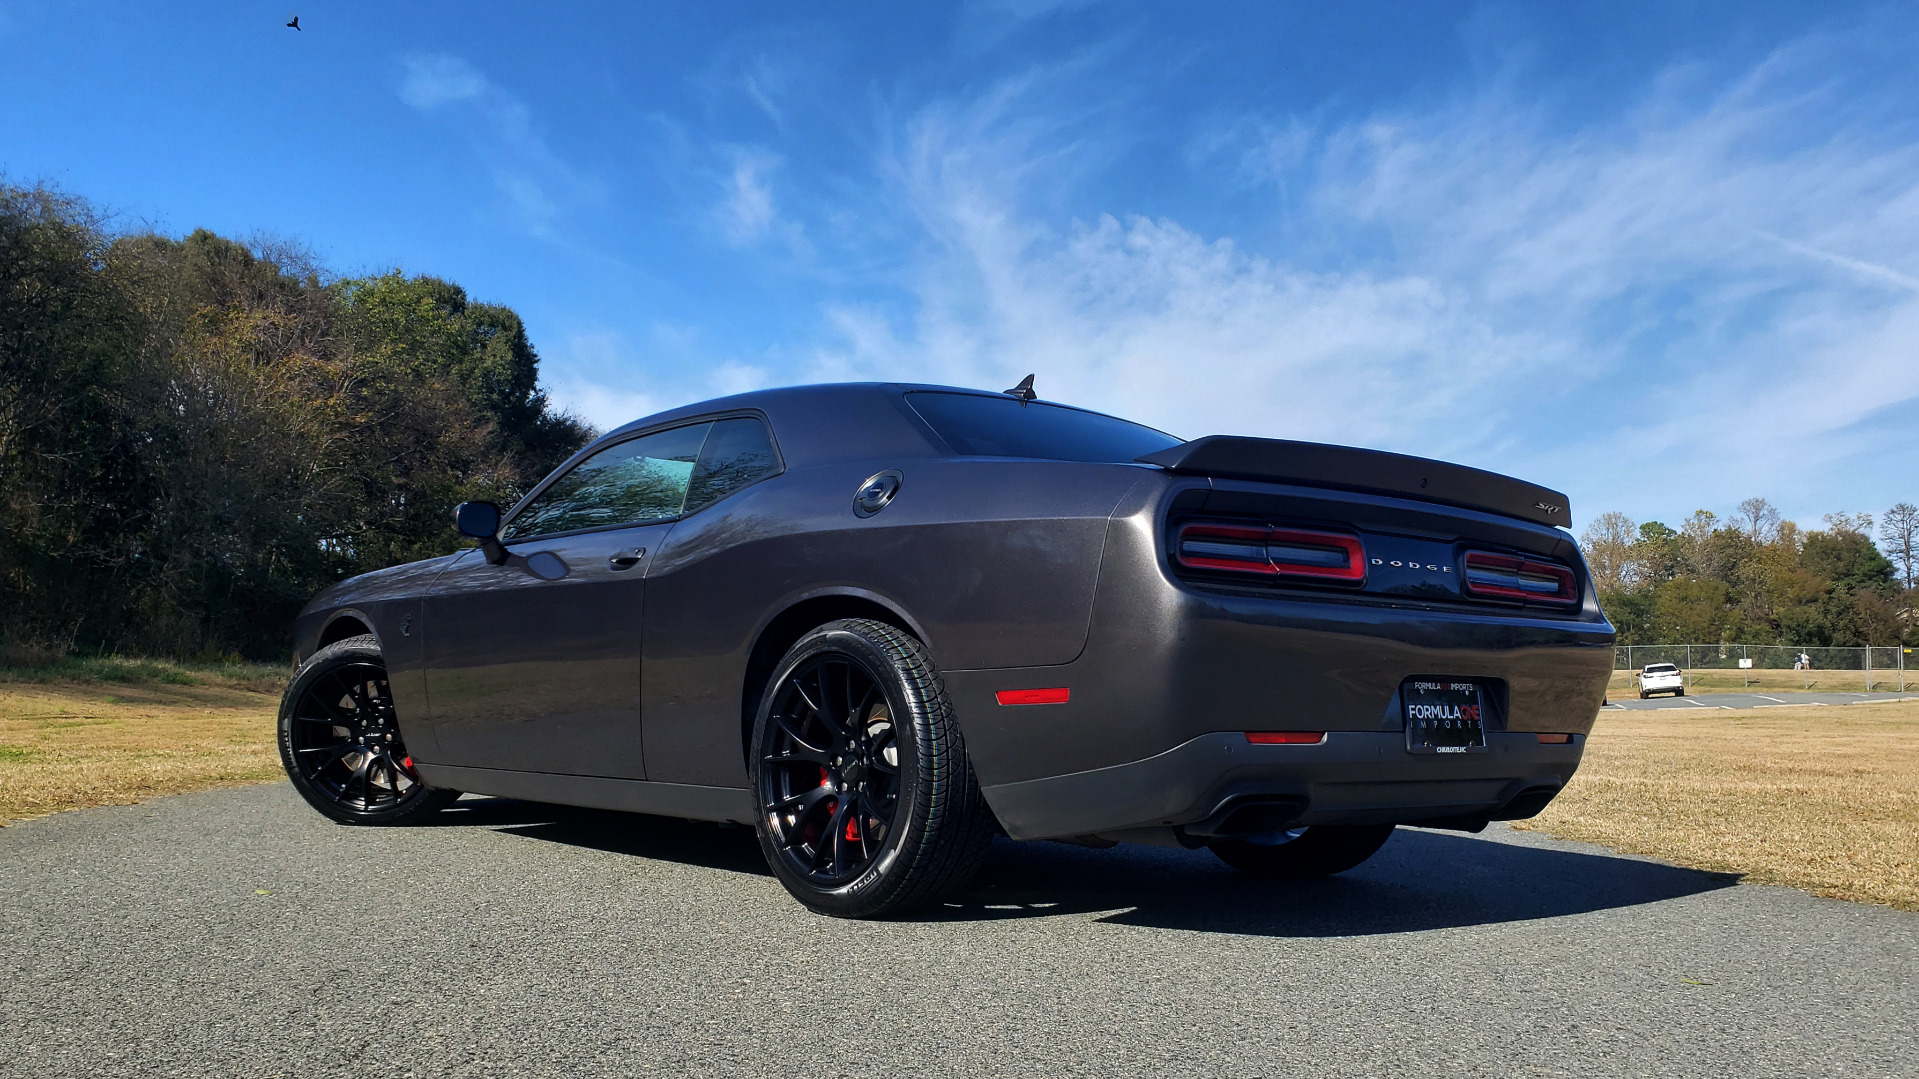 Used 2016 Dodge CHALLENGER SRT HELLCAT COUPE / 6-SPD MAN / NAV / SRT APPS / REARVIEW for sale Sold at Formula Imports in Charlotte NC 28227 9